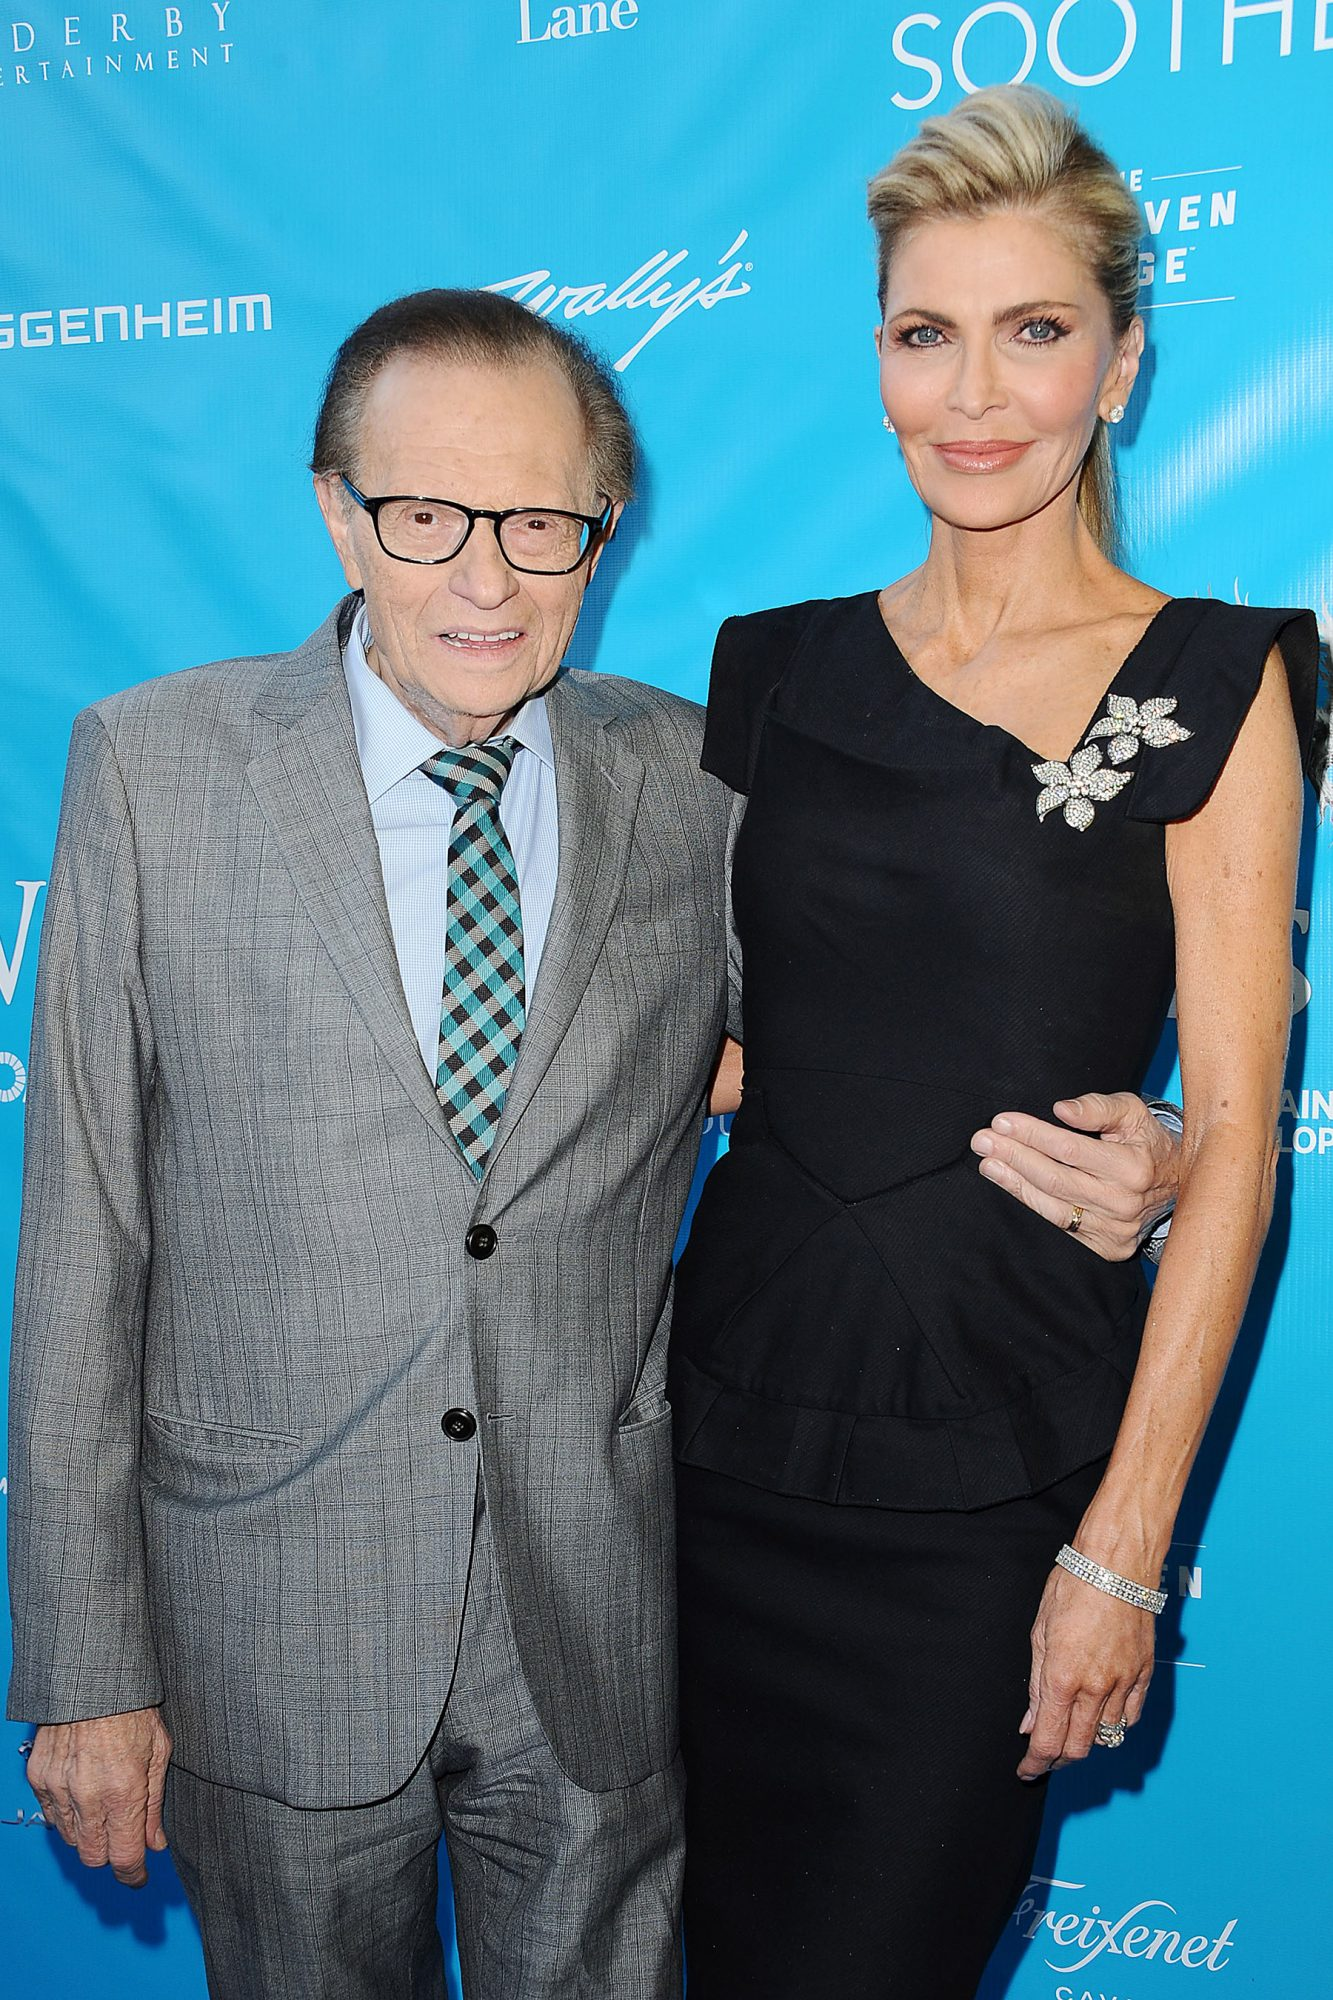 Larry King And Wife Shawn Divorce After 20 Years People Com